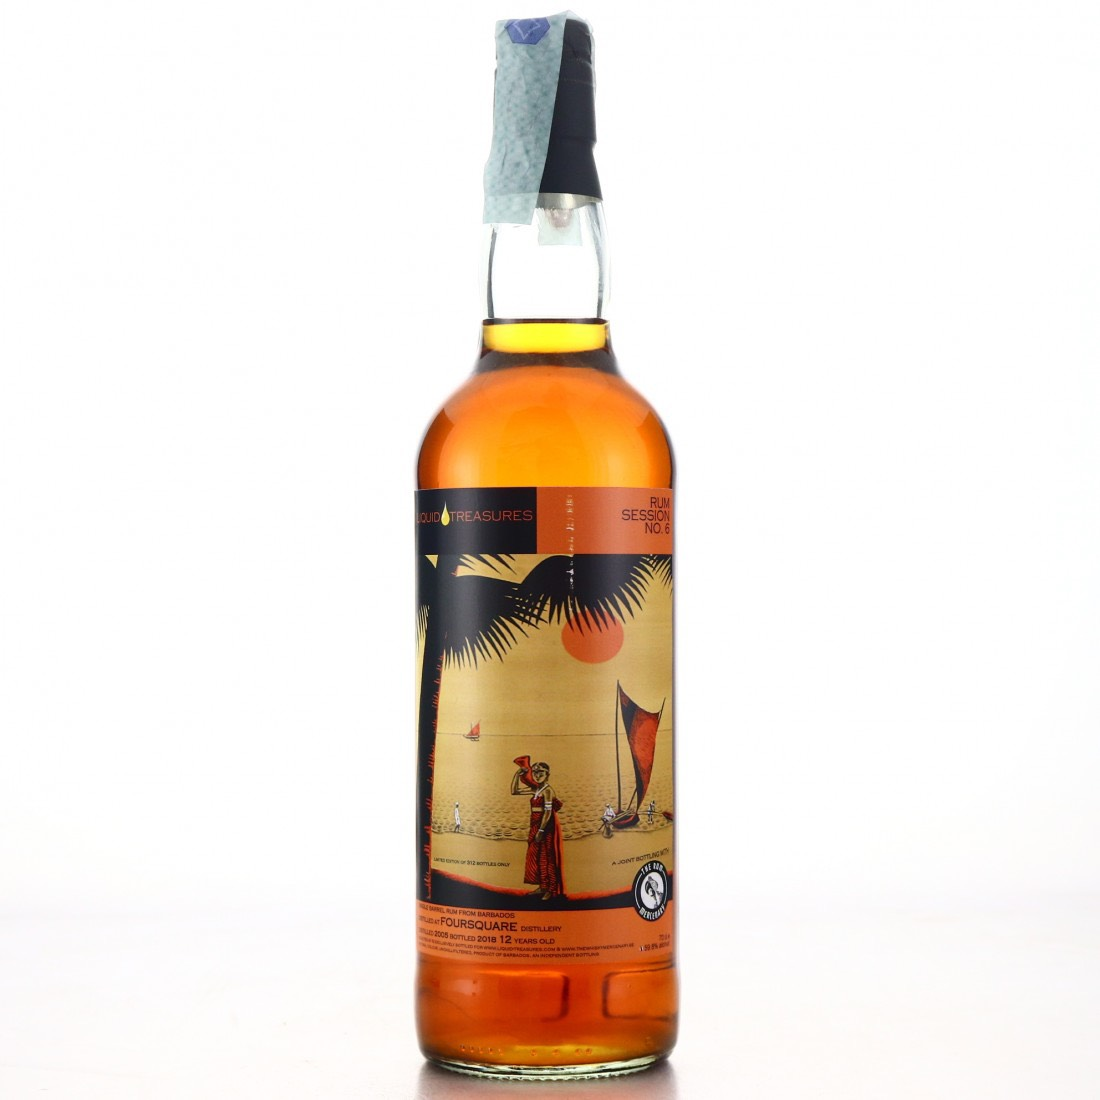 Bottle image of Rum Session No.6